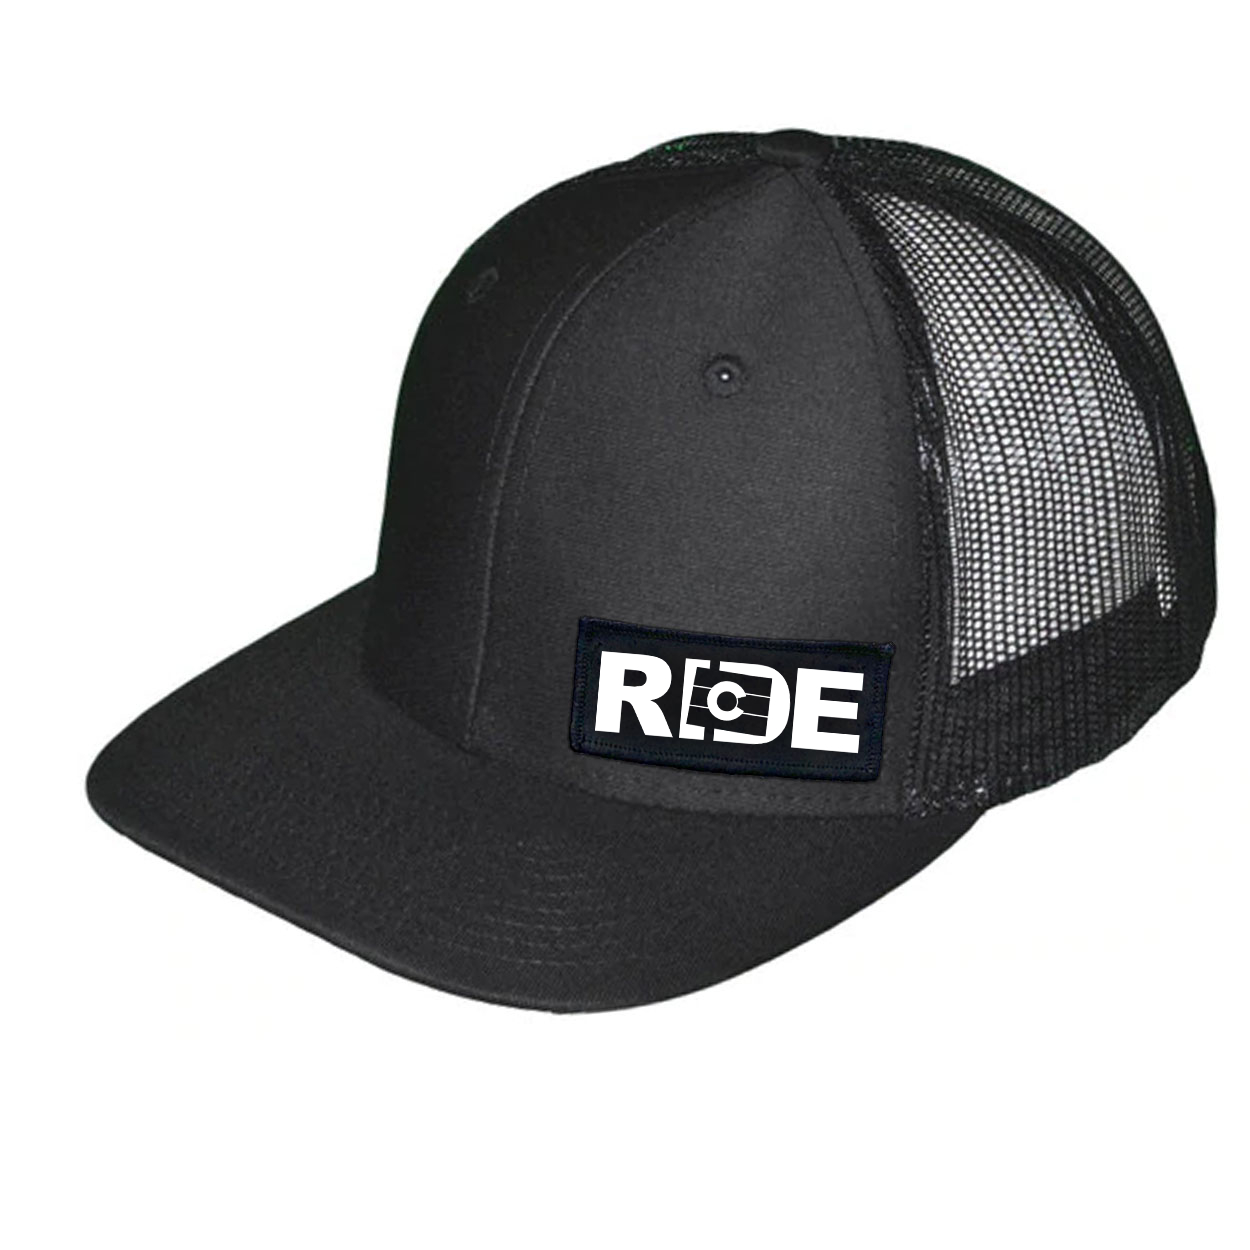 Ride Colorado Night Out Woven Patch Snapback Trucker Hat Black (White Logo)